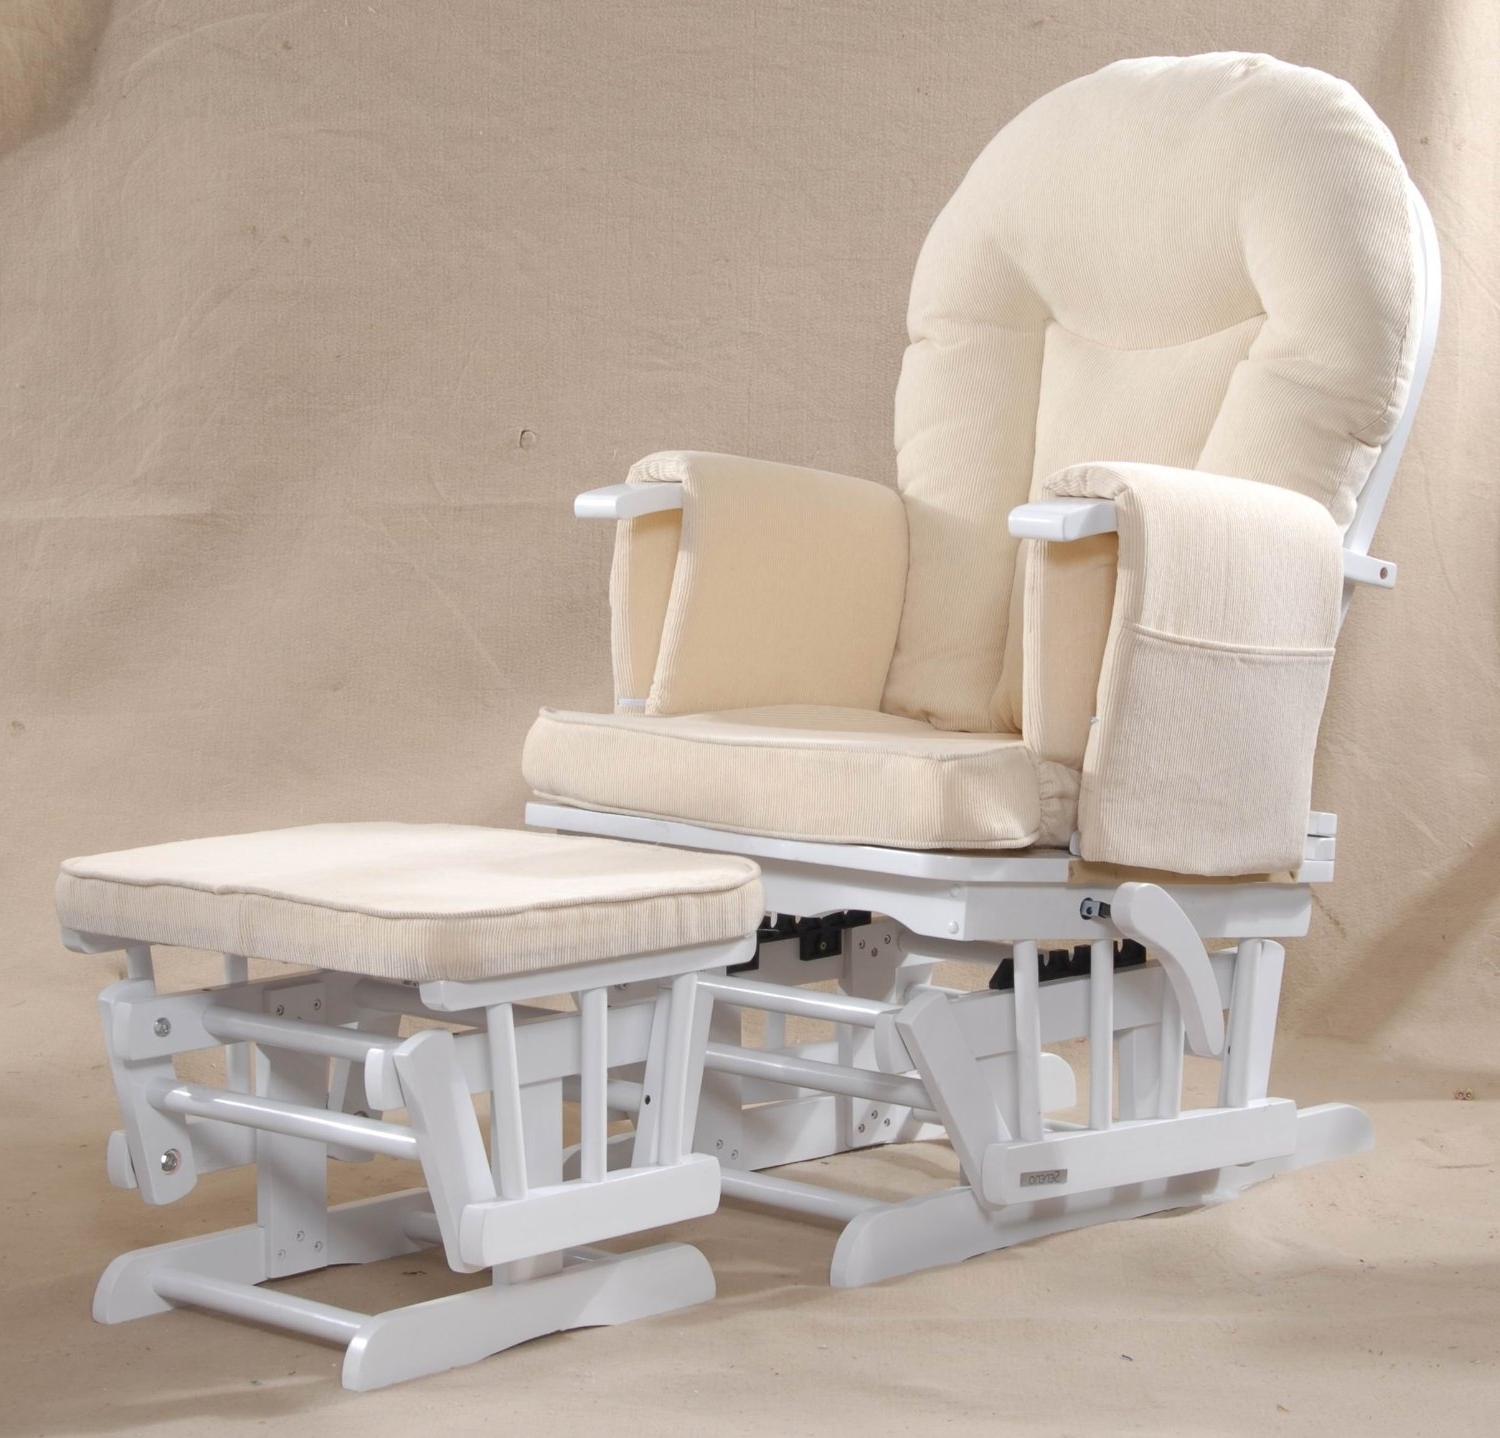 Popular Rocking Chairs For Nursing Throughout Bedroom : Nursery Rocking Chair Nursing Chair Glider Rocker Baby (View 12 of 15)